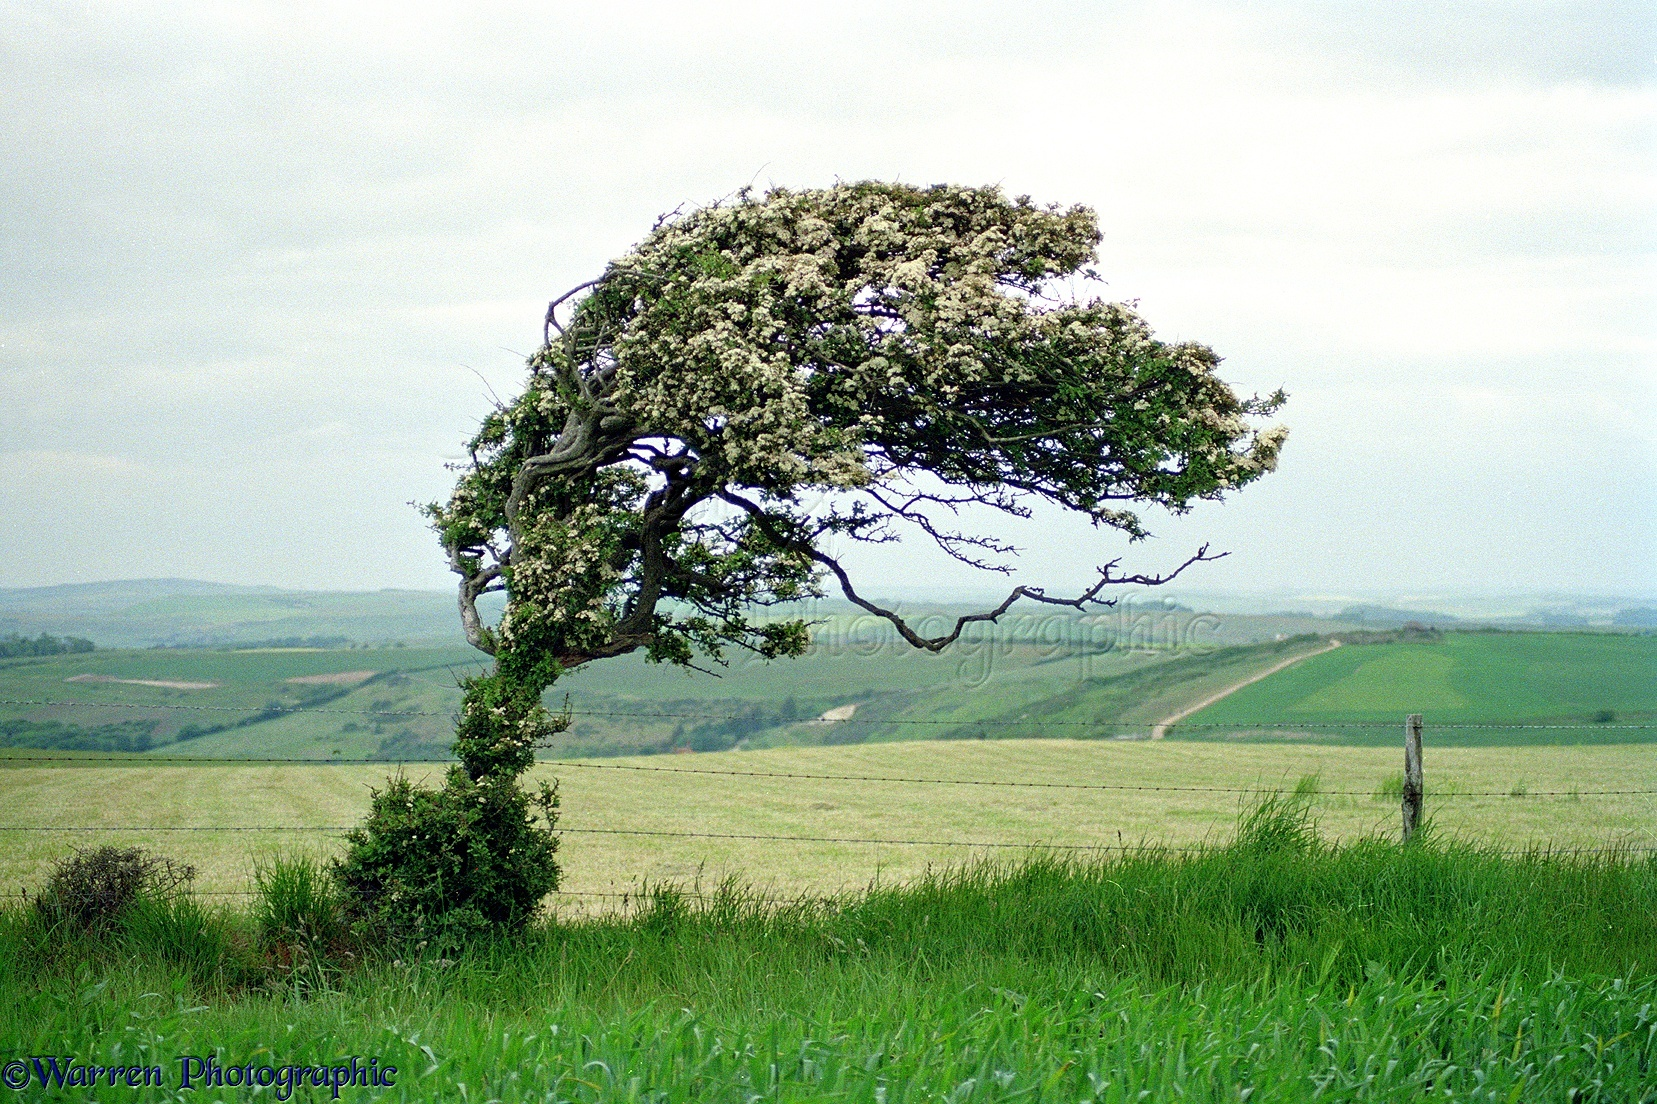 http://www.warrenphotographic.co.uk/photography/bigs/02502-Wind-blown-tree-at-Whitenothe.jpg